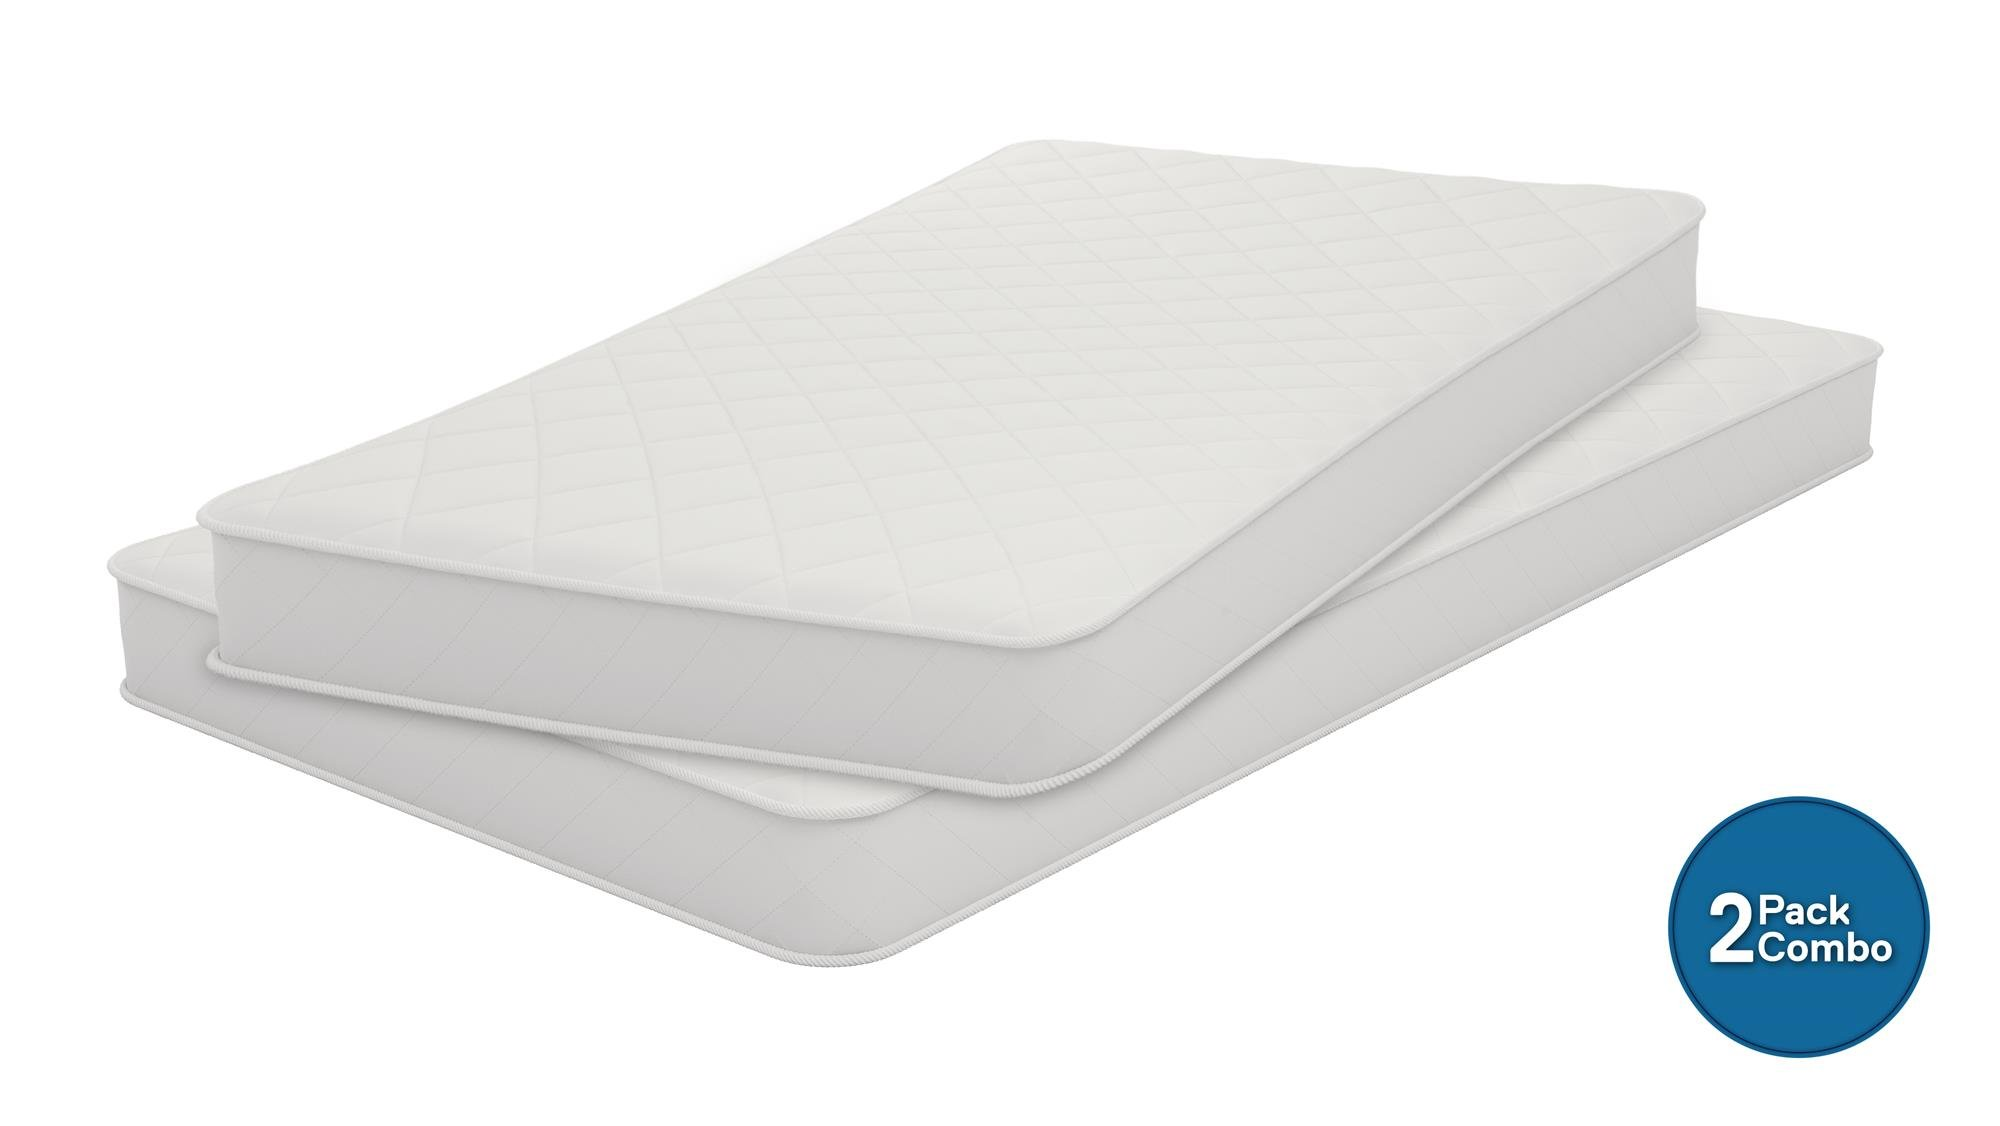 Signature Sleep 6'' Coil Mattress made with CertiPUR-US certified foam - Set of 2 Twin Size Mattresses